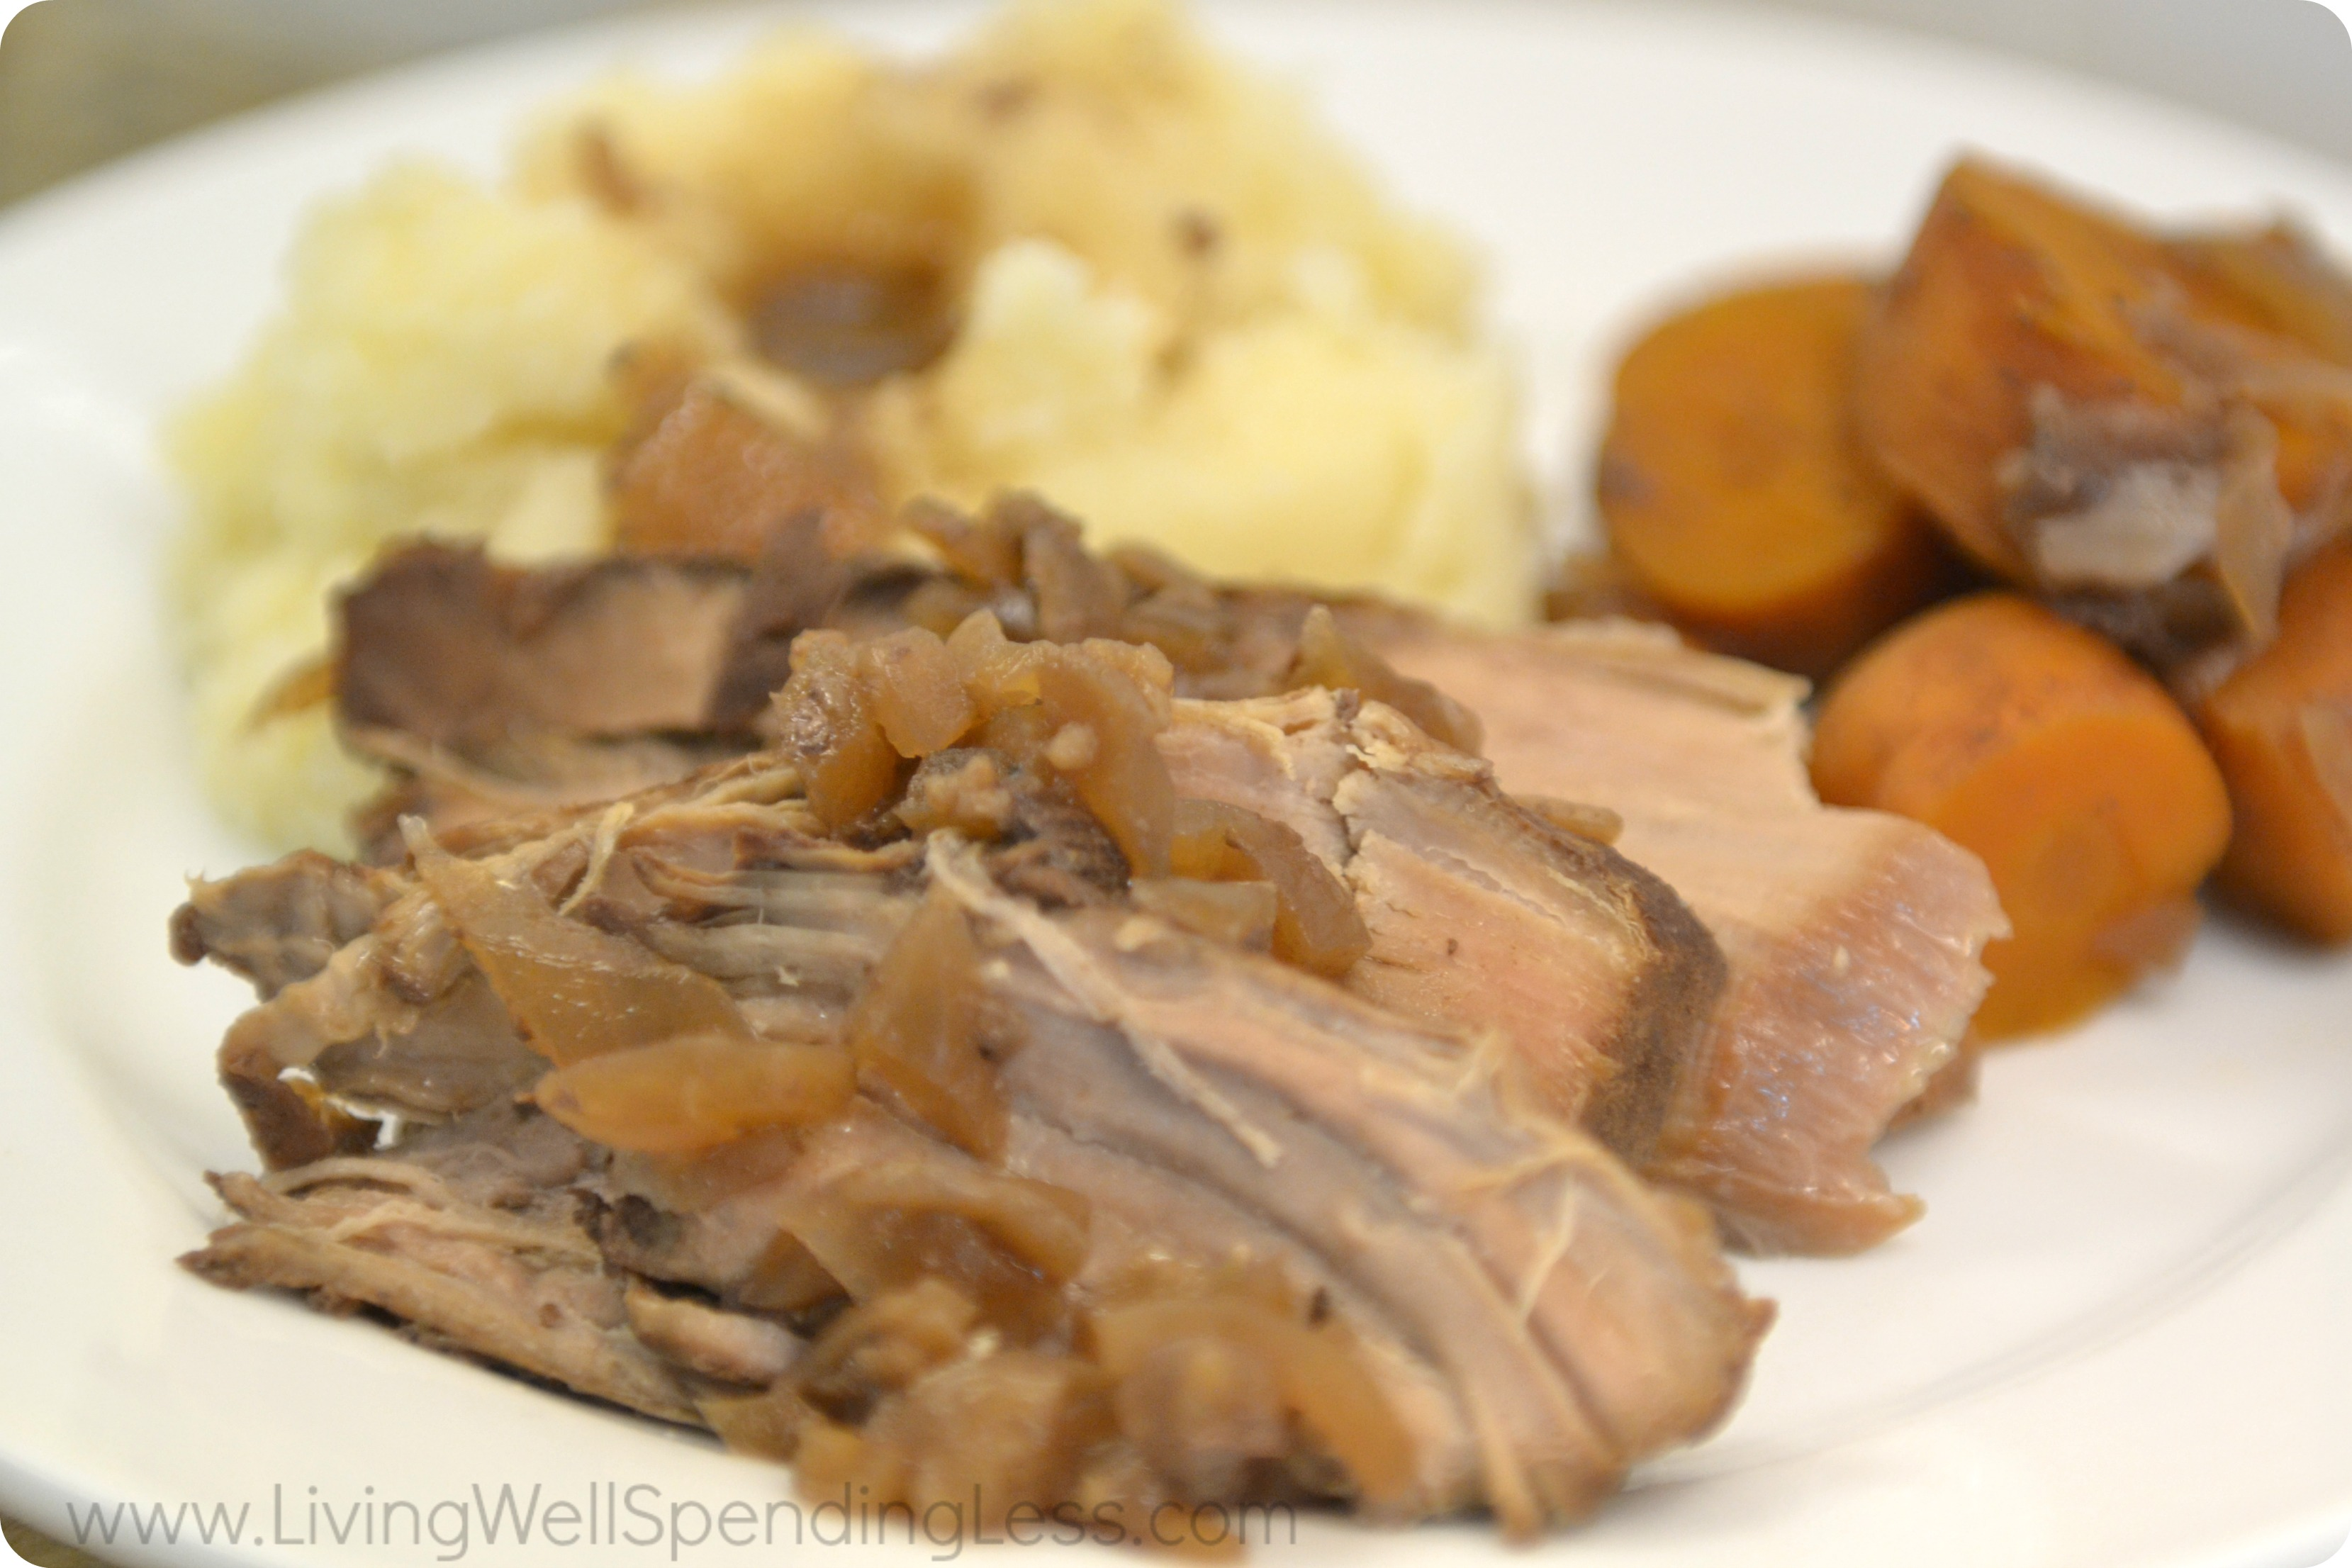 Slow cooked pork tenderloin makes the perfect comforting dinner. Serve with potatoes and the carrots.